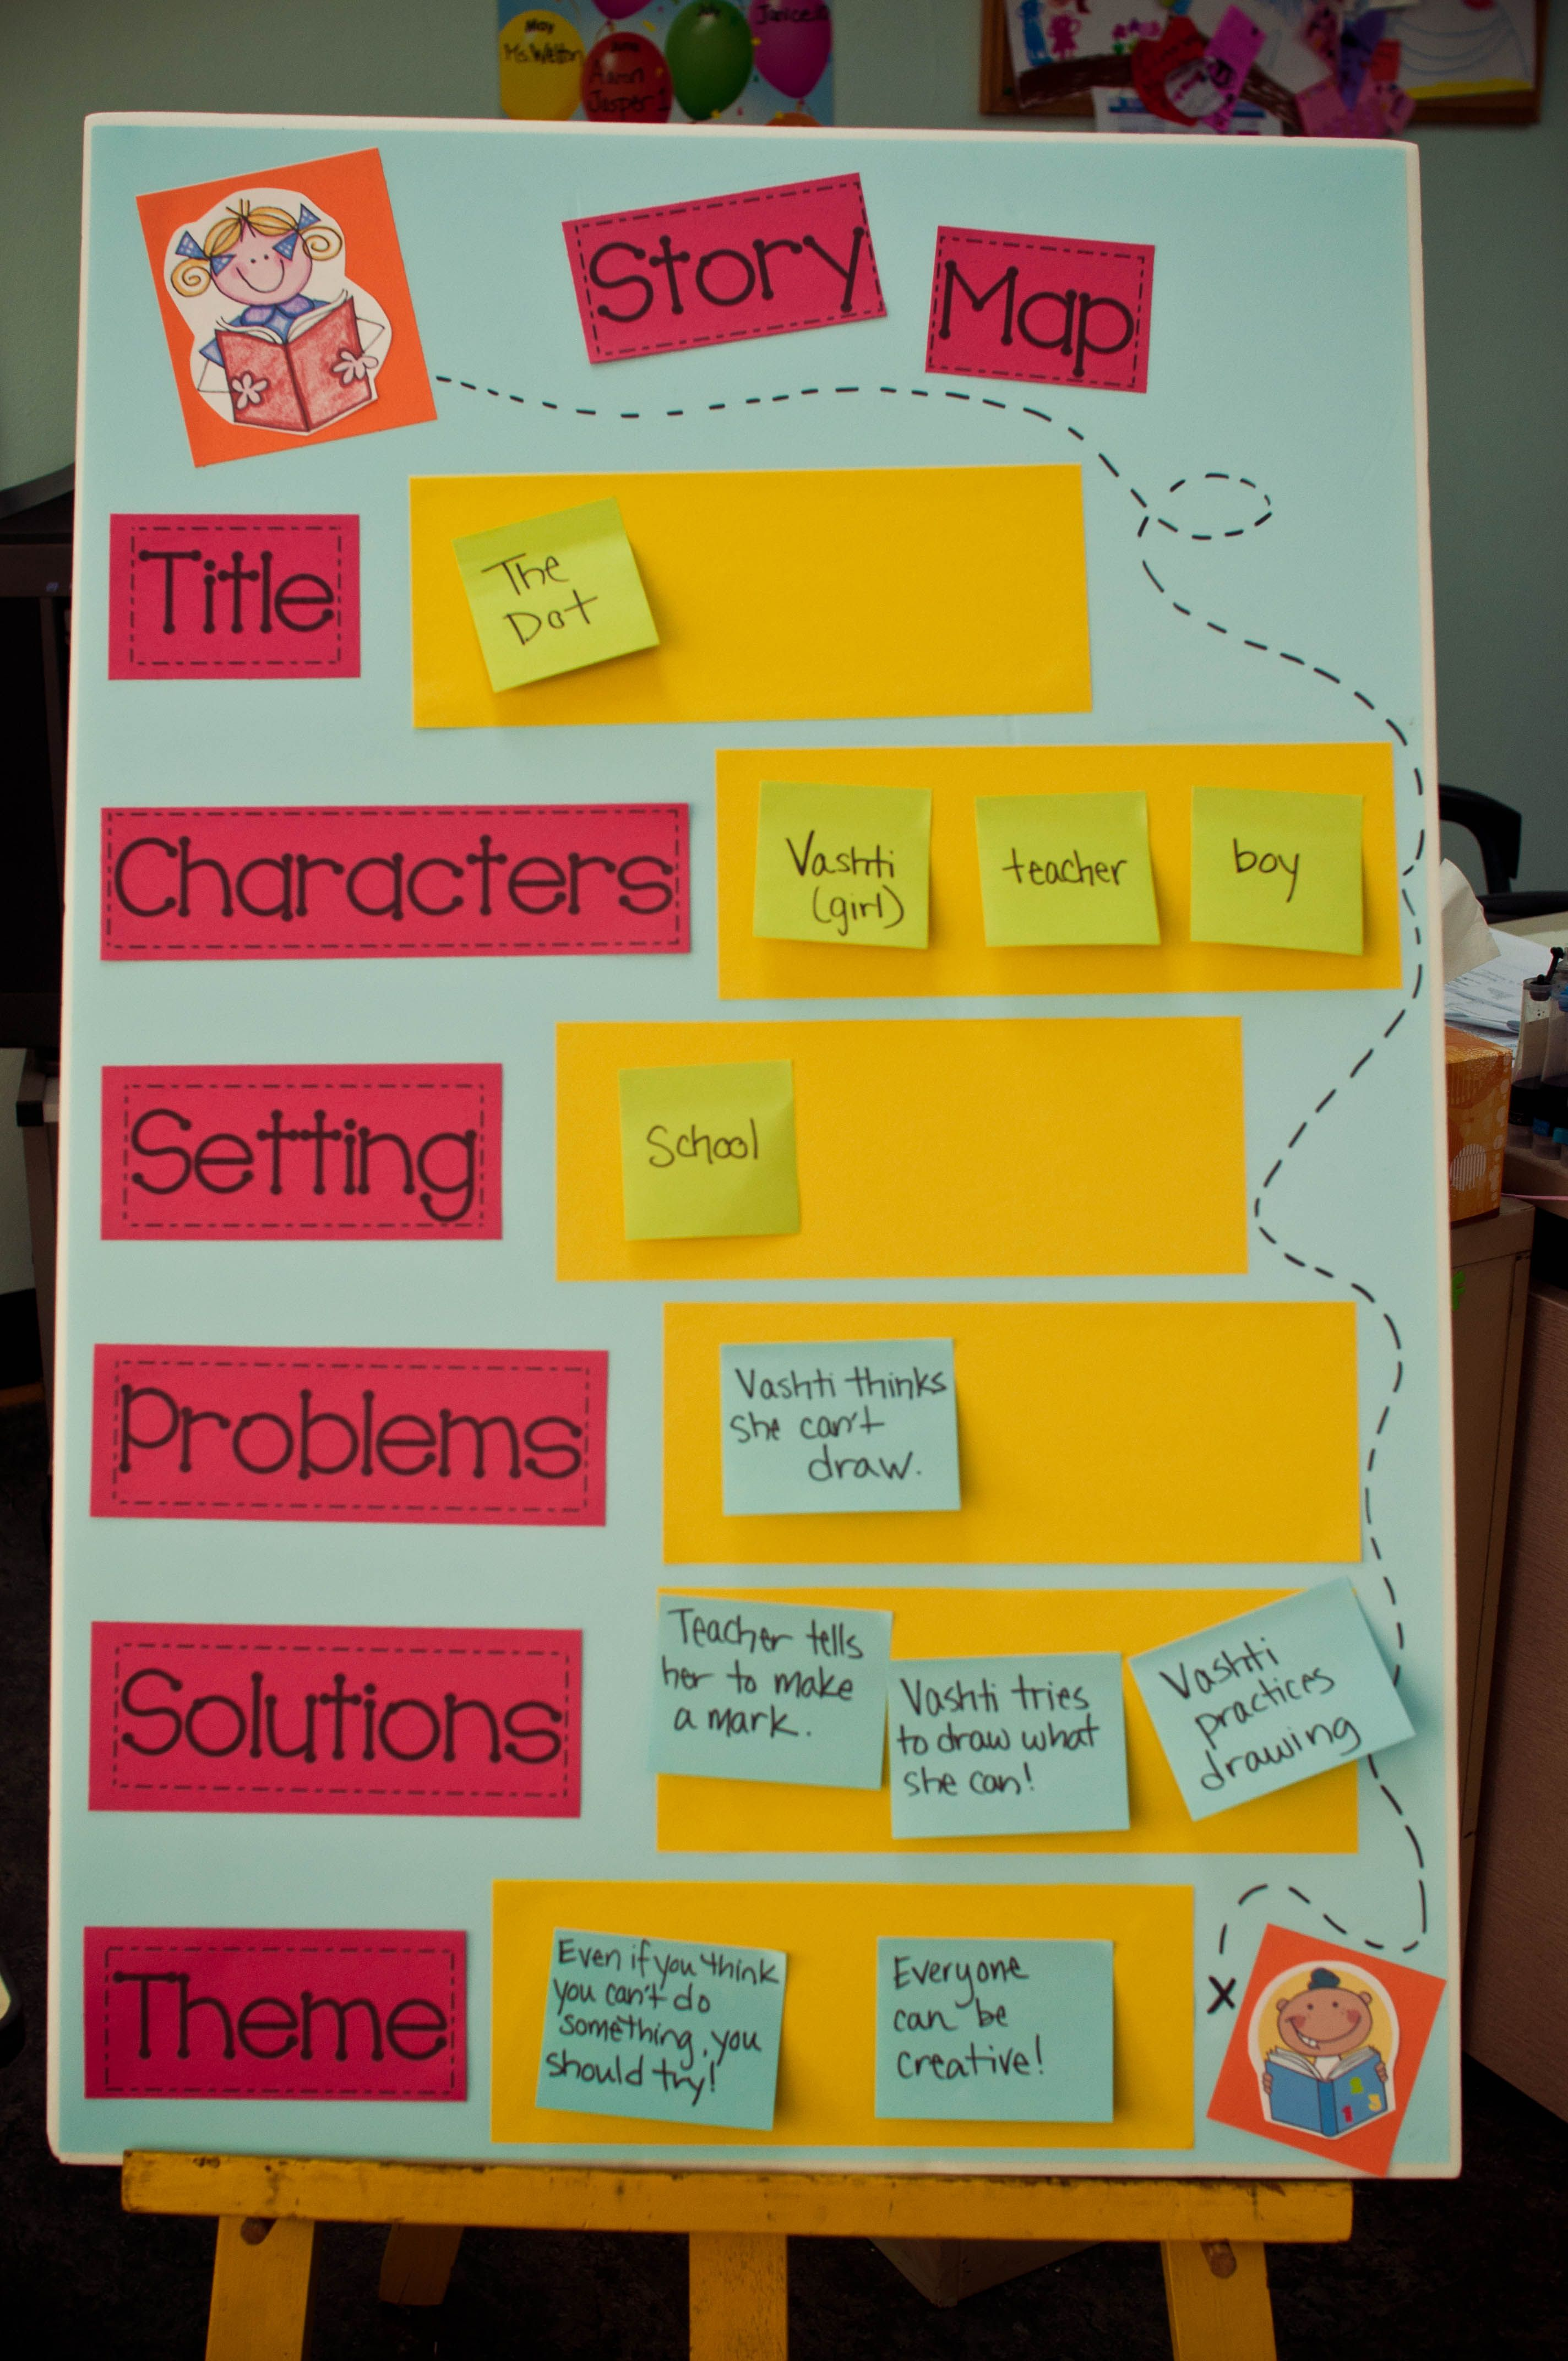 Great Story Map Idea By Using Sticky Notes You Can Have